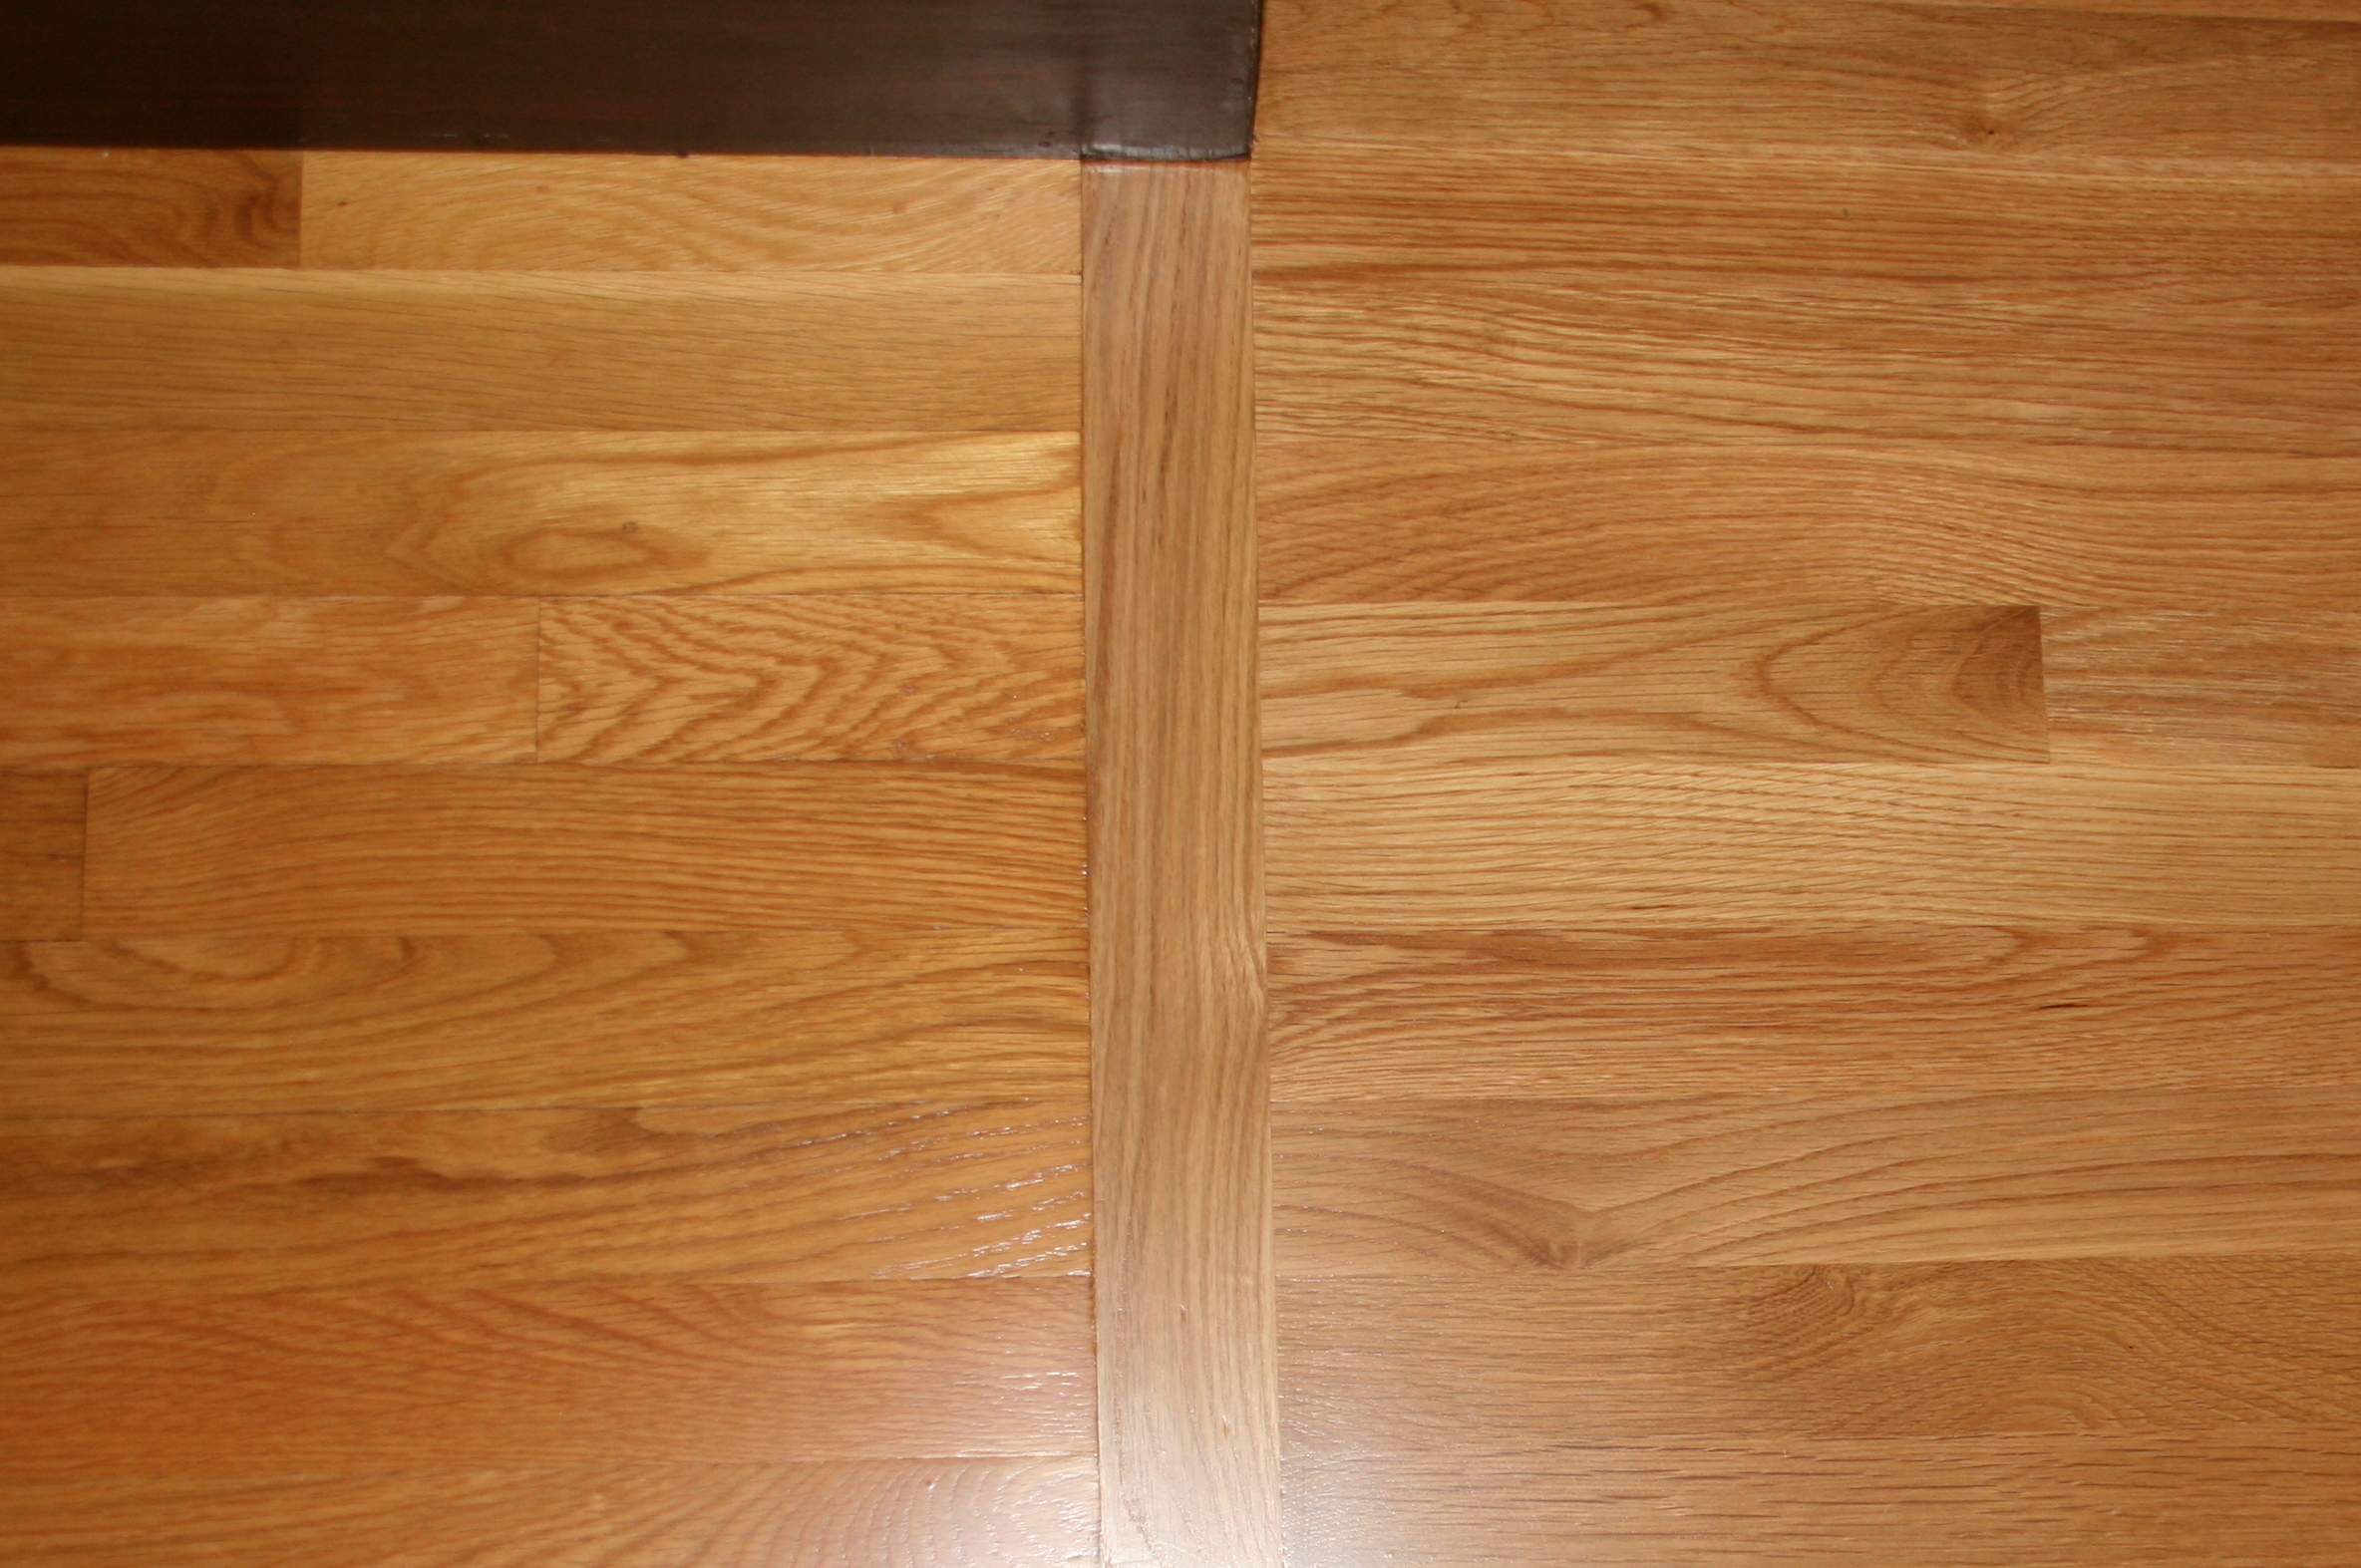 Color matching hardwood floors duffyfloors for Hardwood floor colors